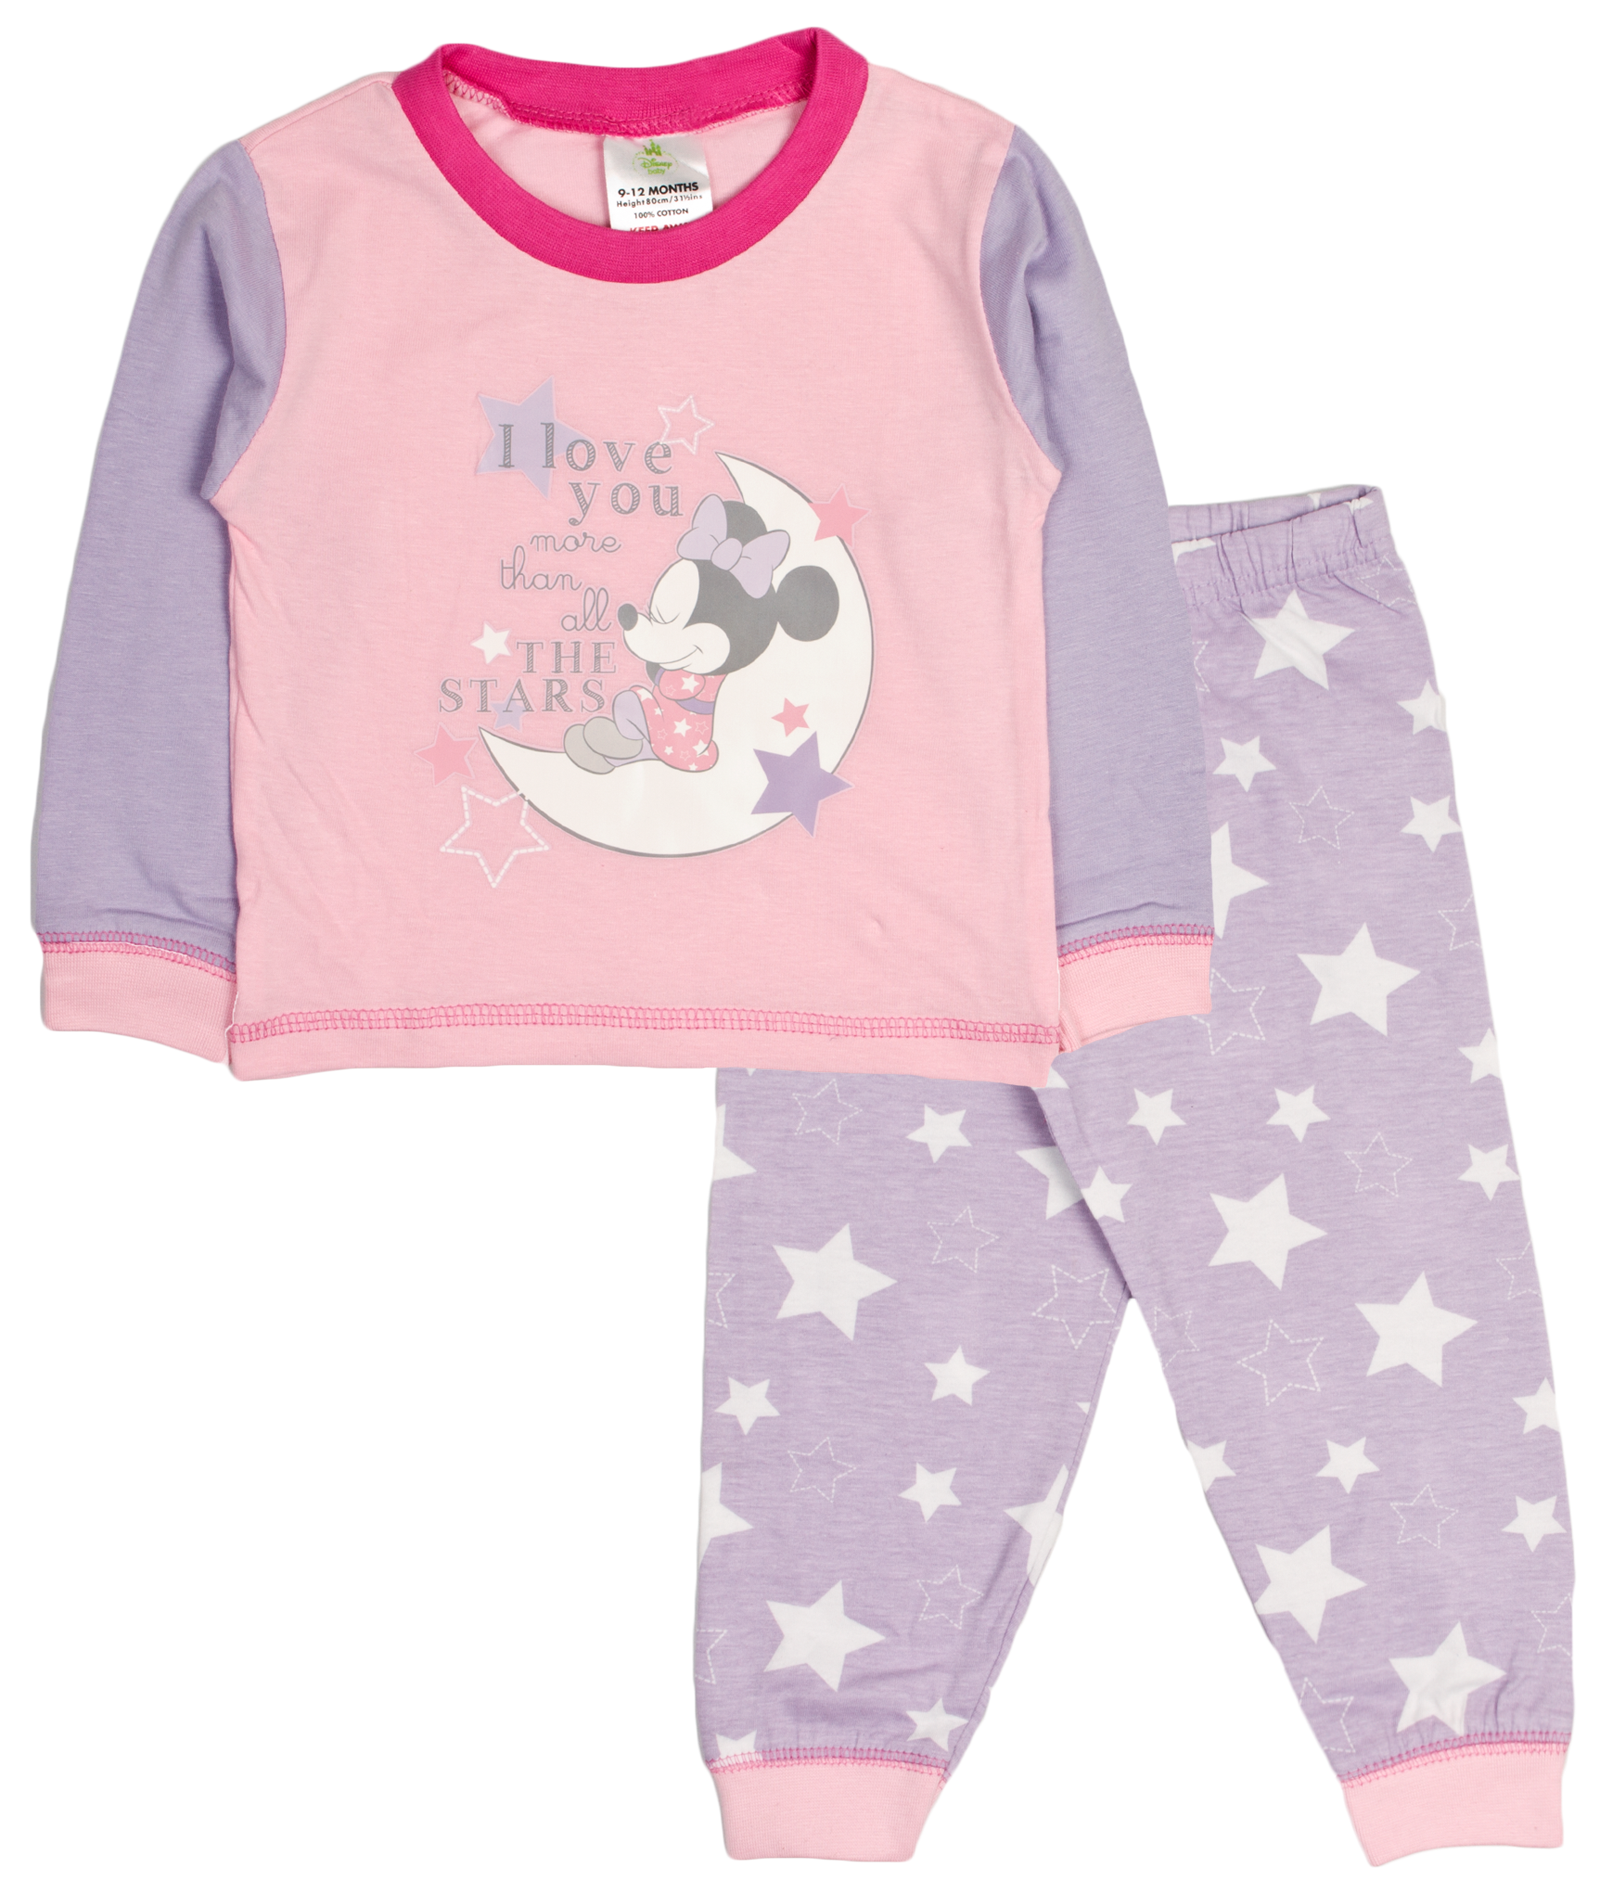 5d640a72d Baby Girls Pyjamas Kids Toddlers Disney Minnie Mouse Pjs Set Me To ...